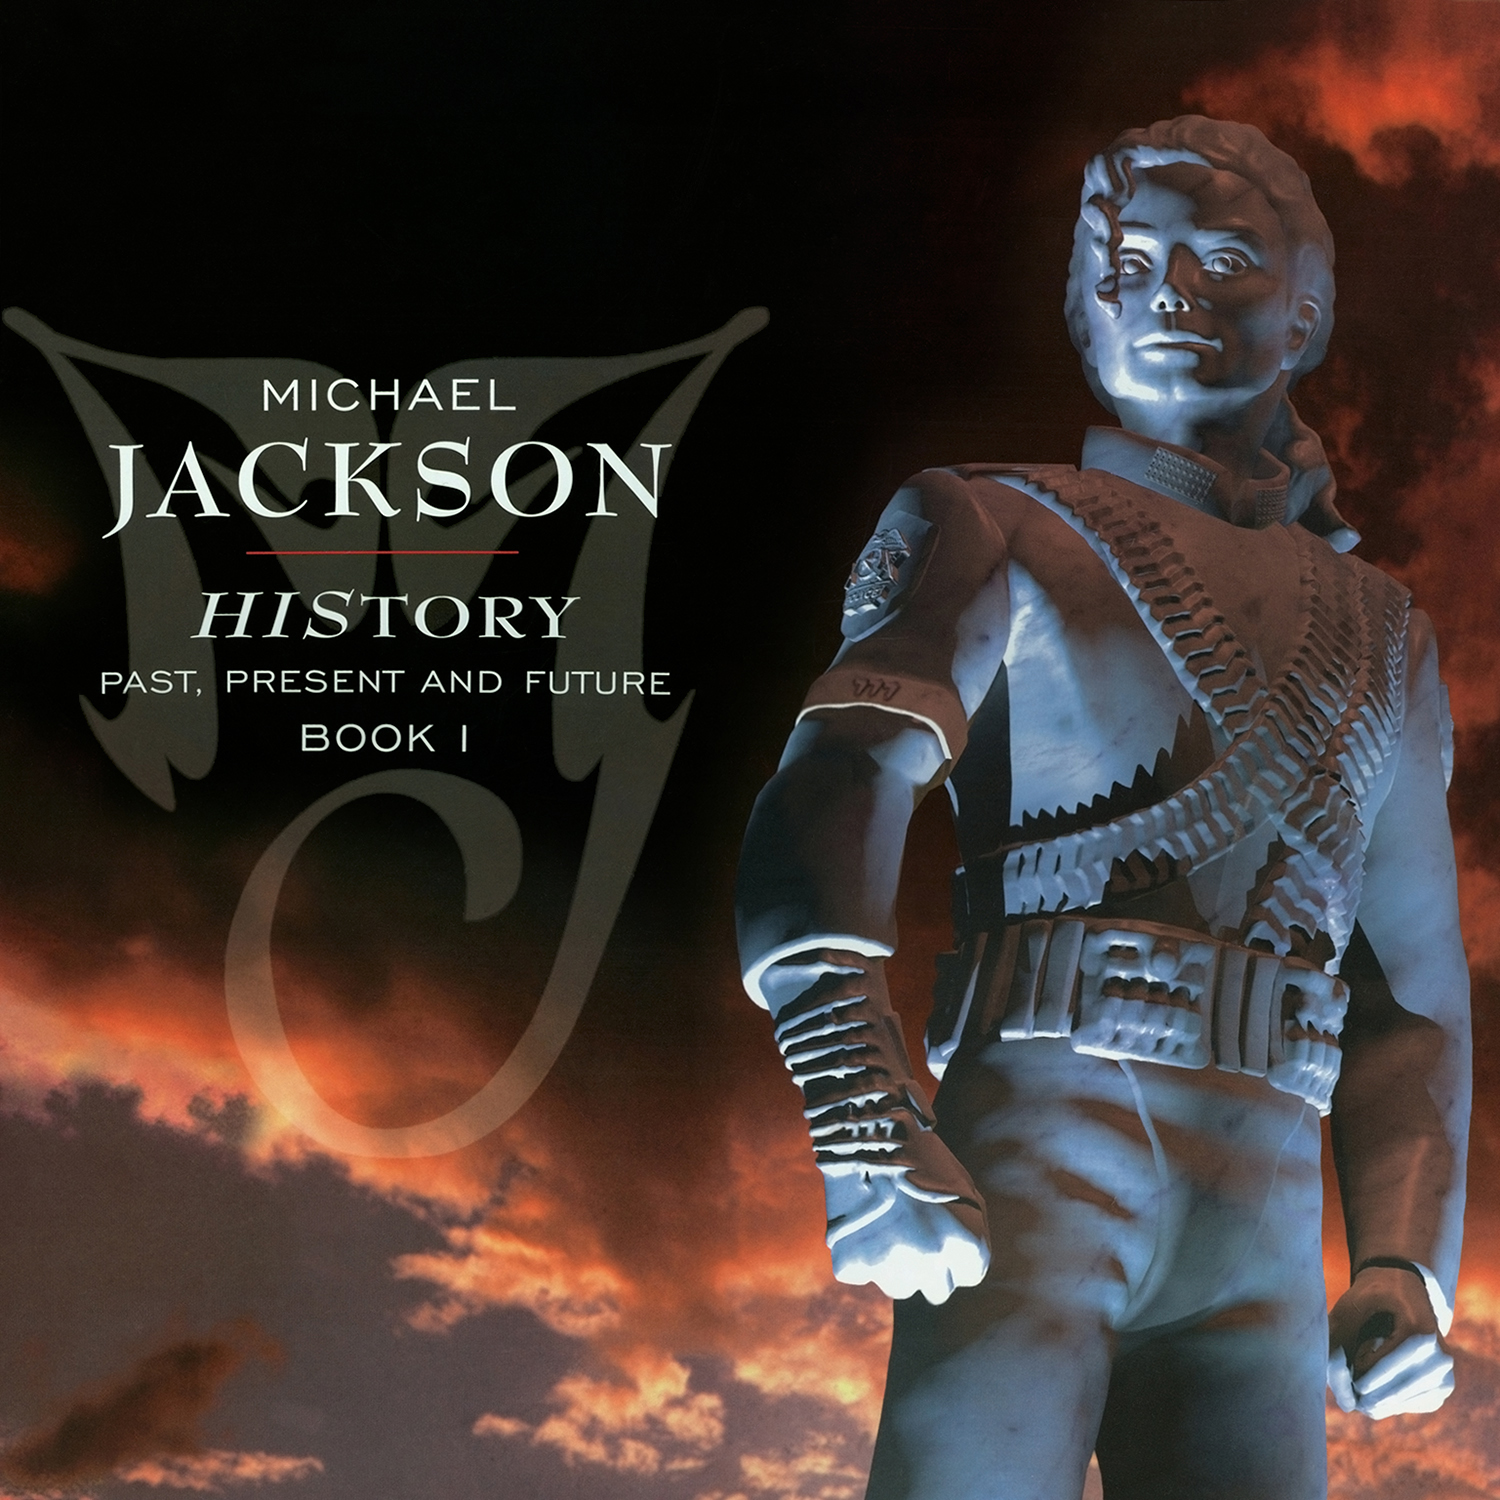 audio review : History ( album ) ... Michael Jackson